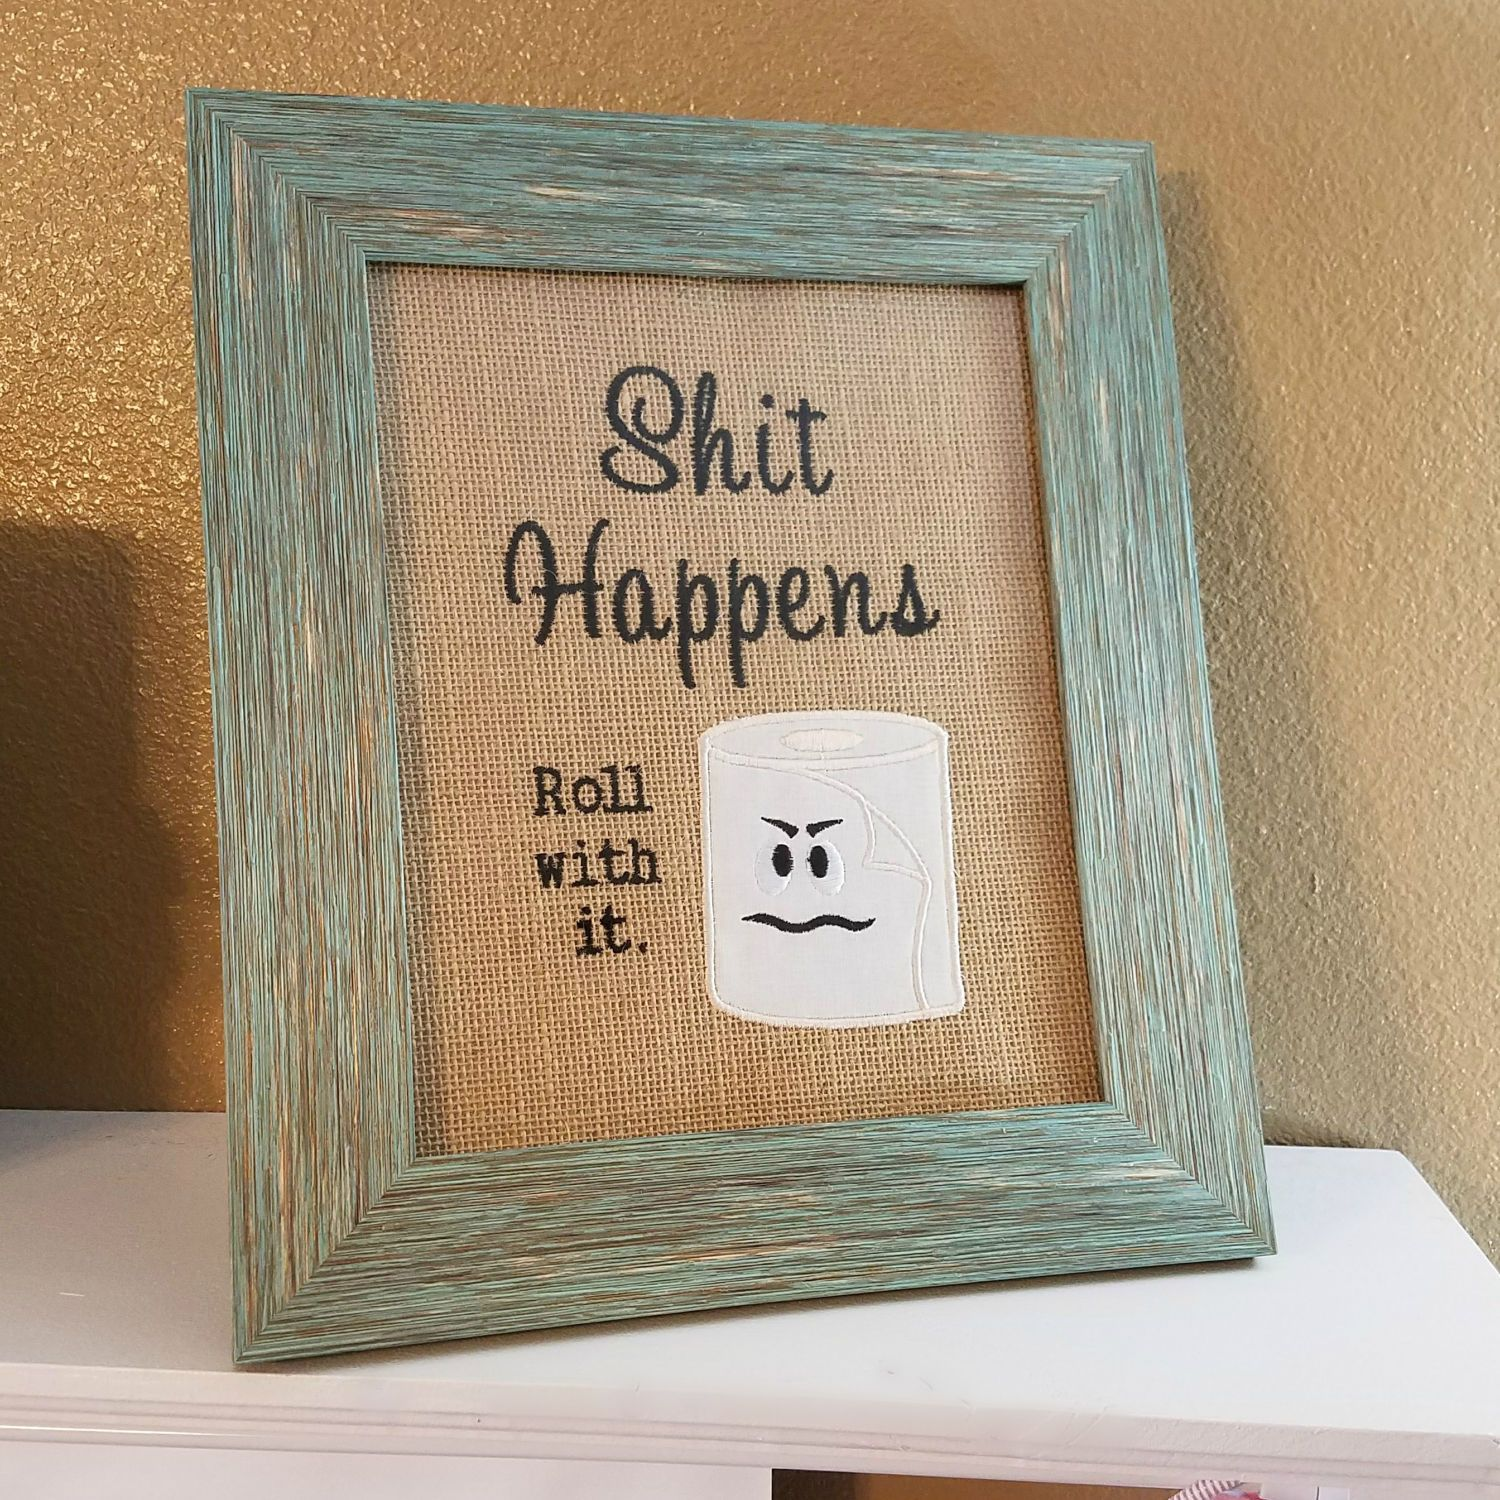 Funny Bathroom Sign ~ Shit Happens ~ Roll With It ~ Funny Bathroom Decor,  Rustic Bath Decor, White Elephant Gift, Motivational Wall Sign By ...